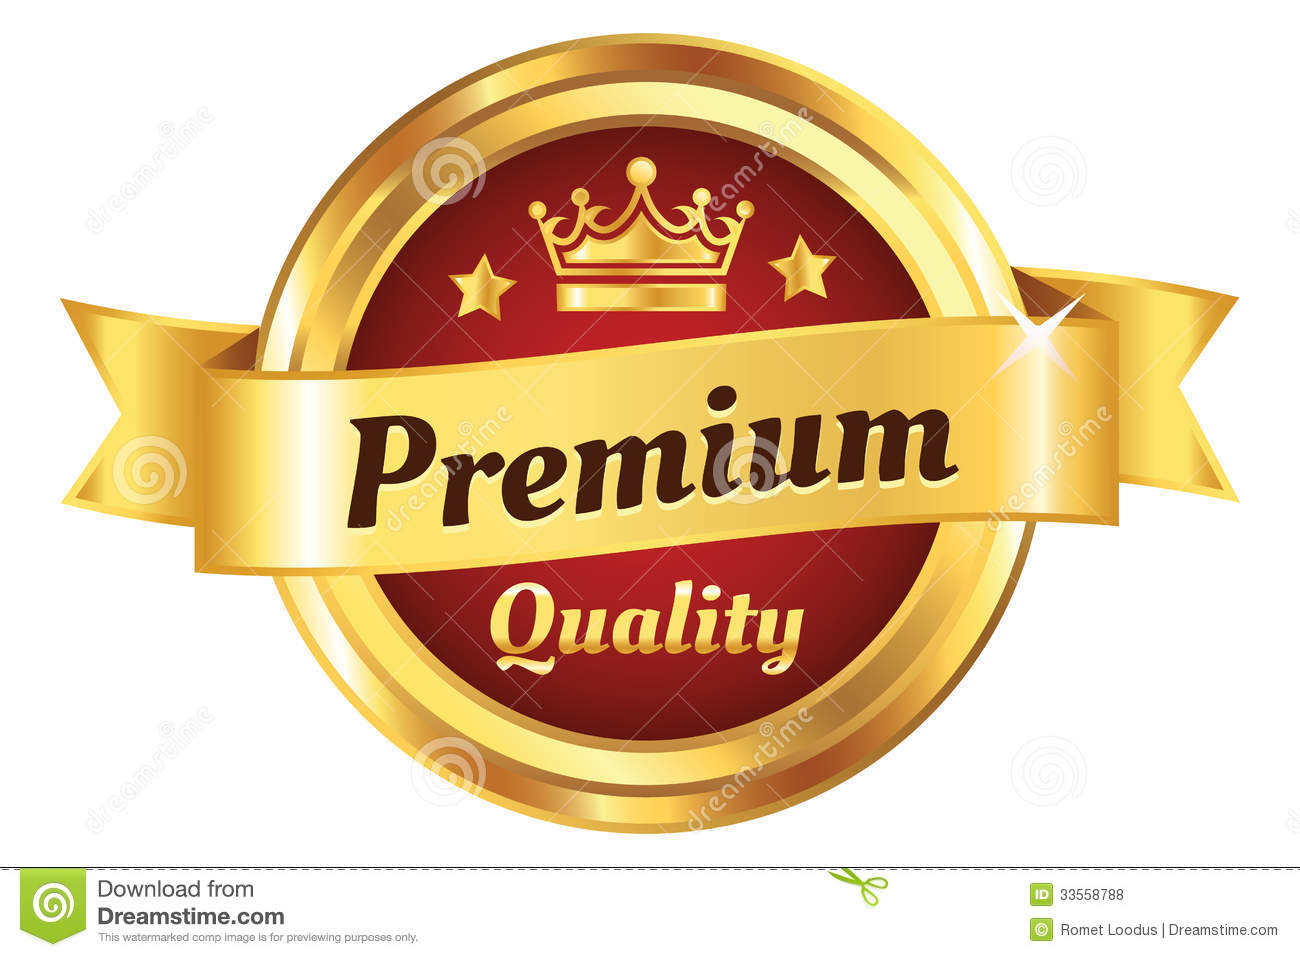 High Quality Golden Badge Royalty Free Stock Photos - Image: 33558788